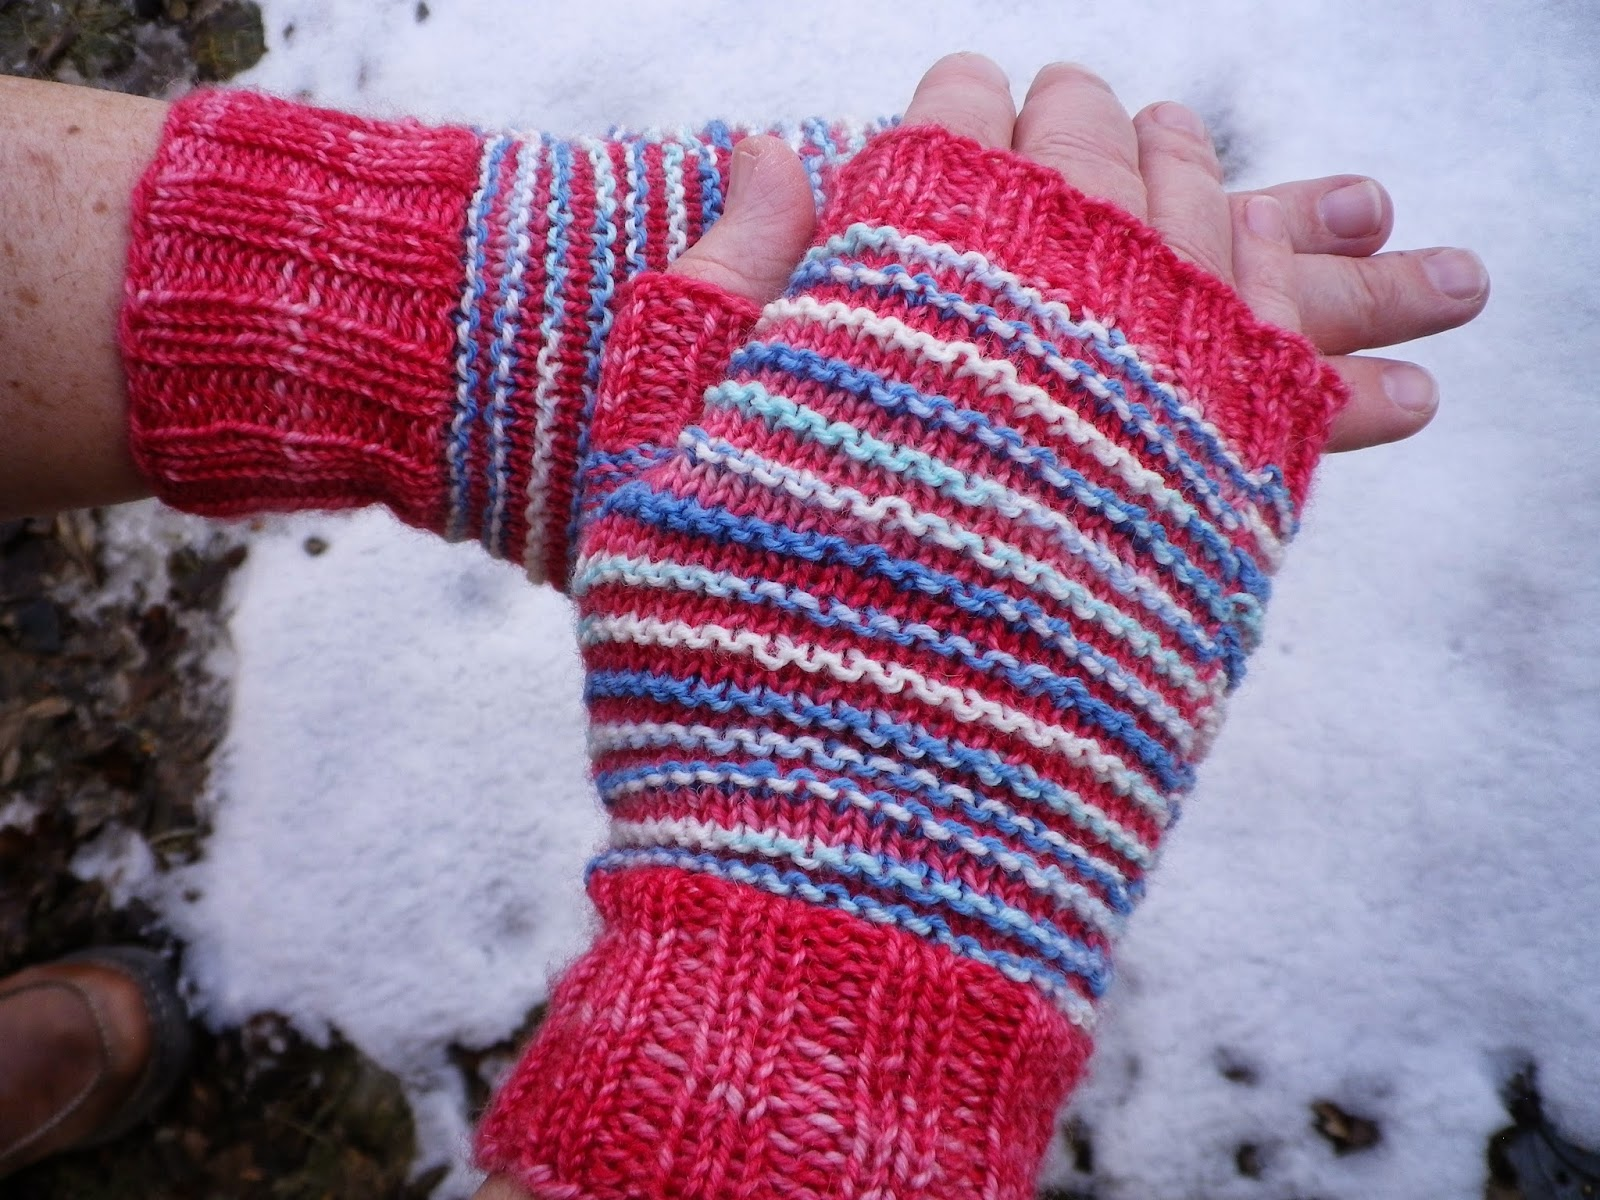 Oak Leaf and Fingerless Mitts hand knit by Feather of Crescent Moon Collective